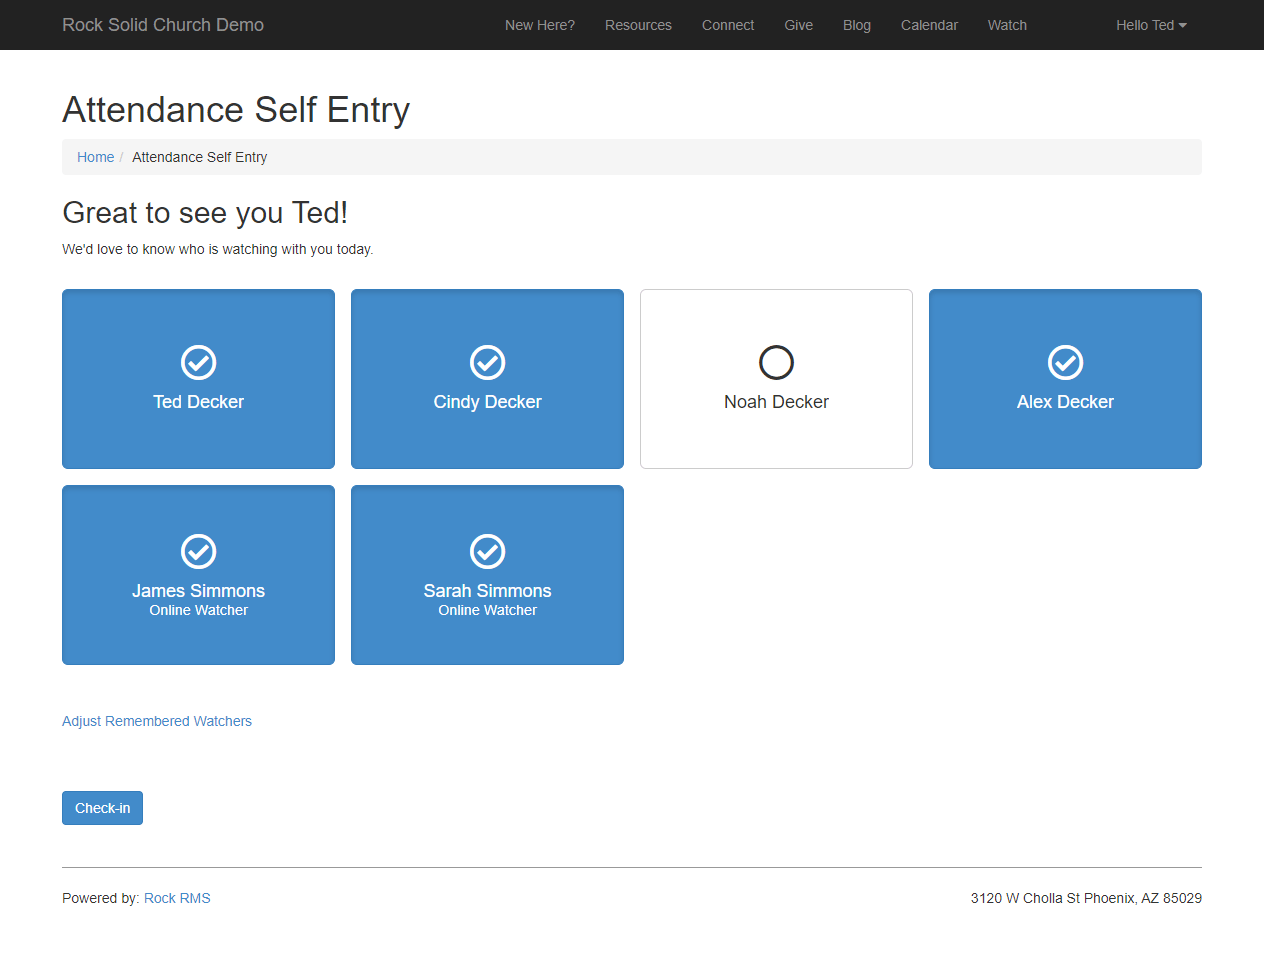 Attendance Self Entry - Known Person